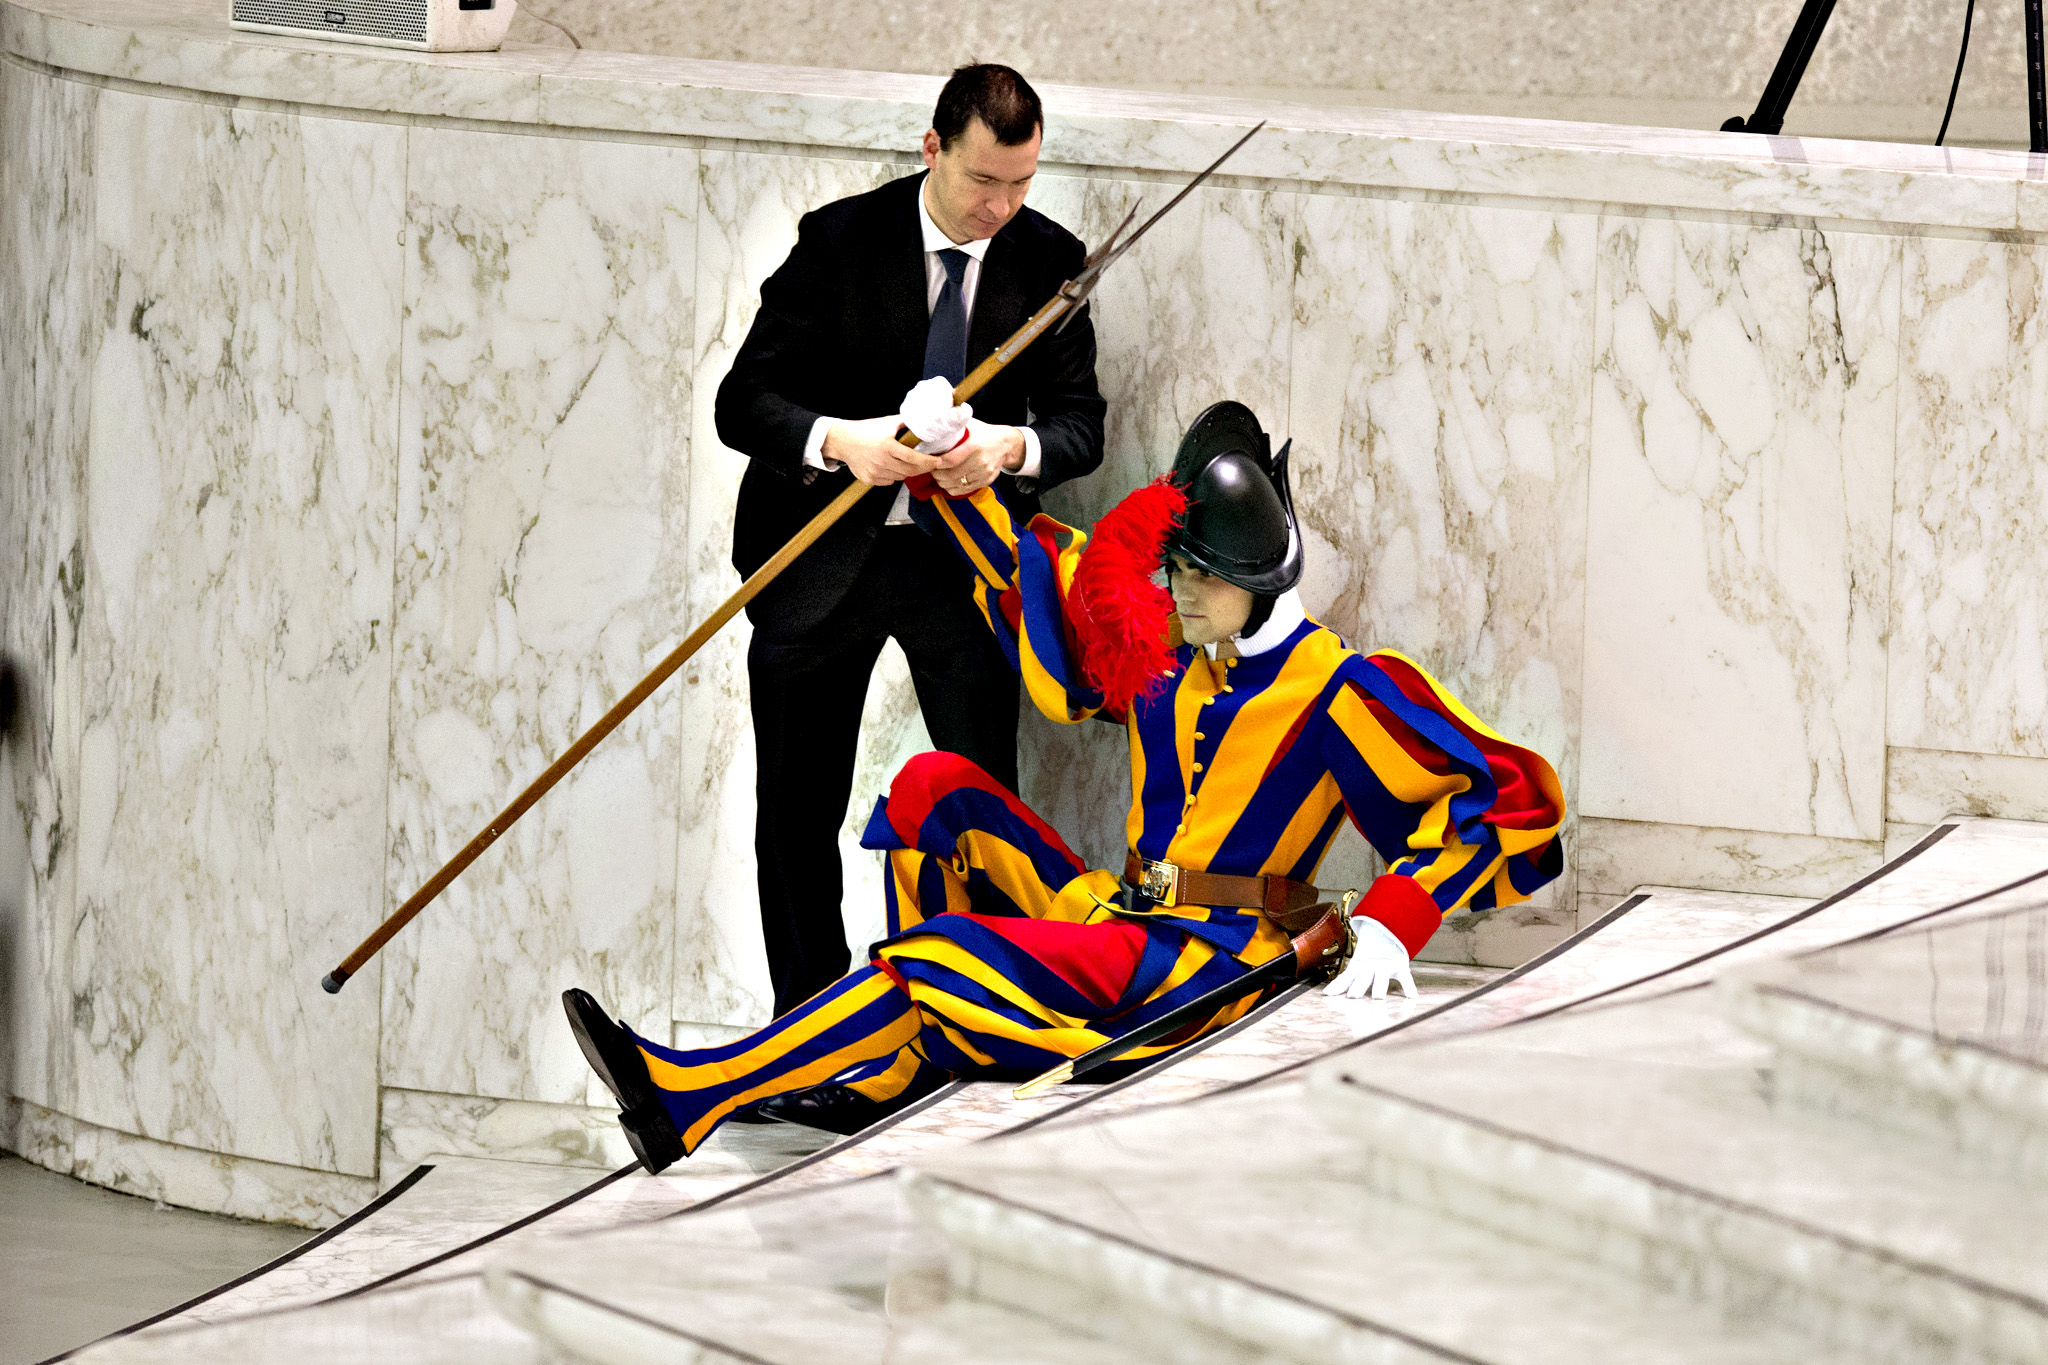 A Swiss Guard is assisted after falling during Pope Francis' weekly general audience in the Paul VI Hall at the Vatican, Wednesday, Jan. 13, 2016.